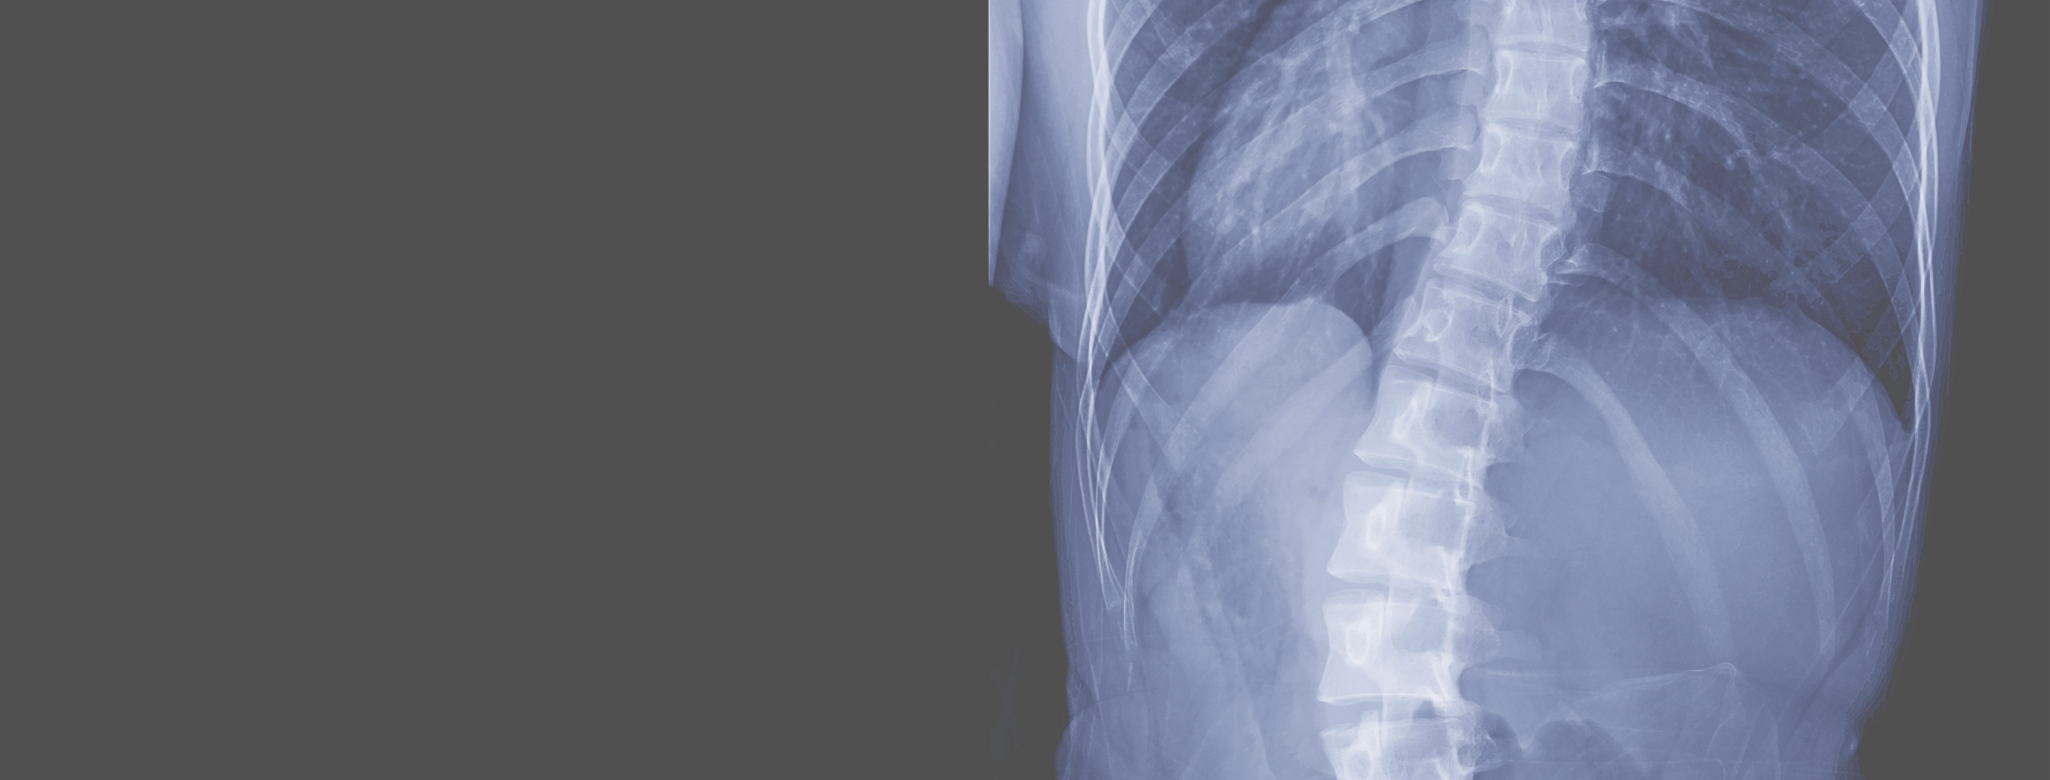 Scoliosis: What it scoliosis and how we treat it.